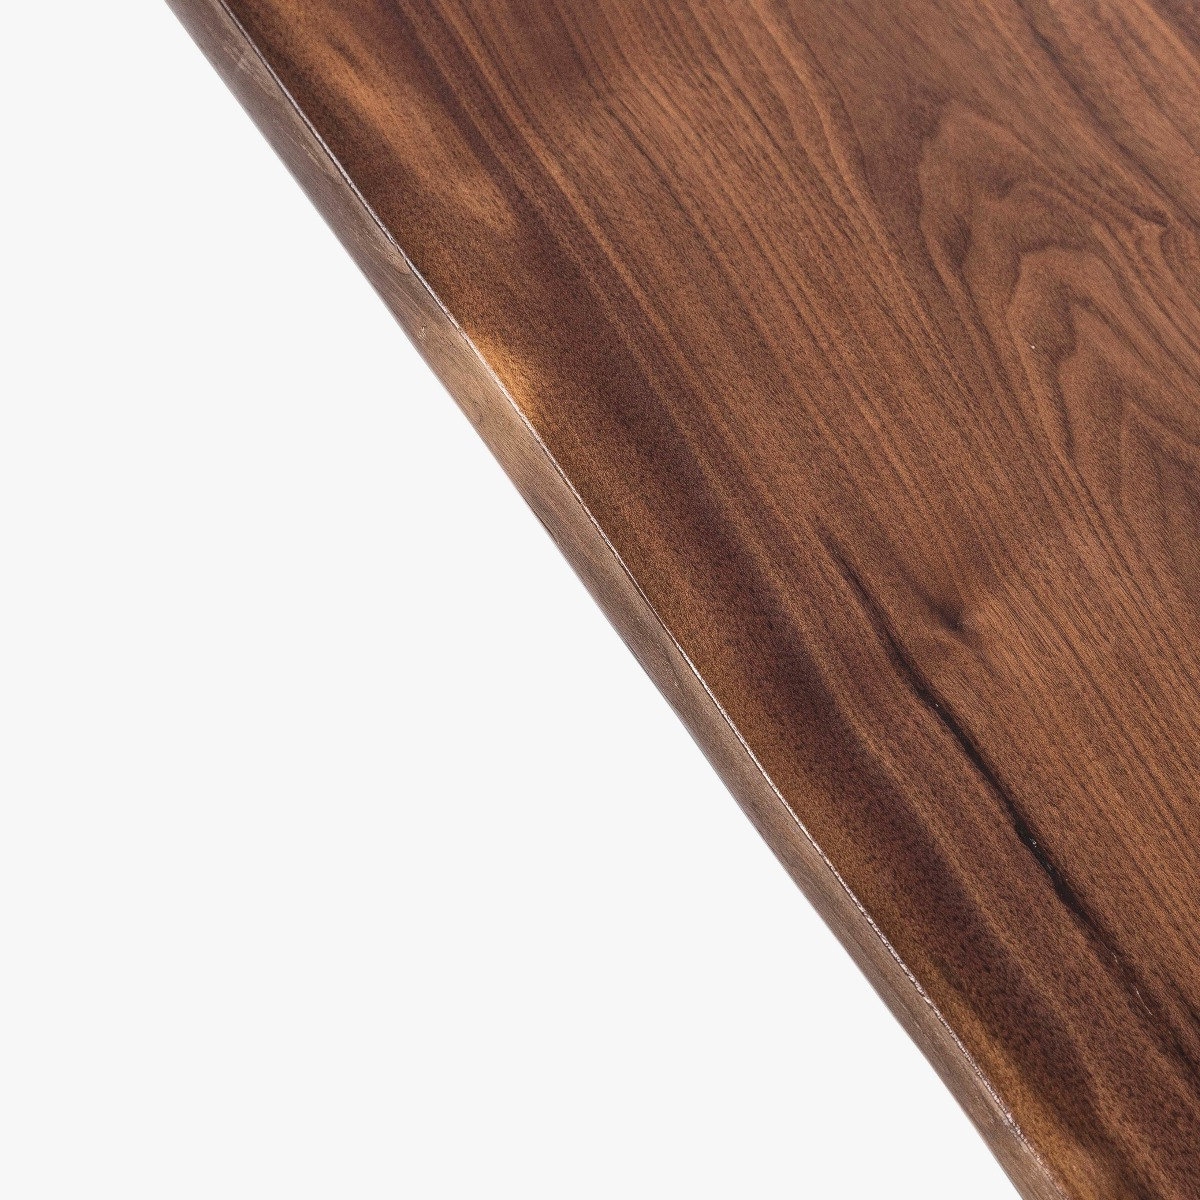 We have retained the live edge to honor the heritage of the wood.